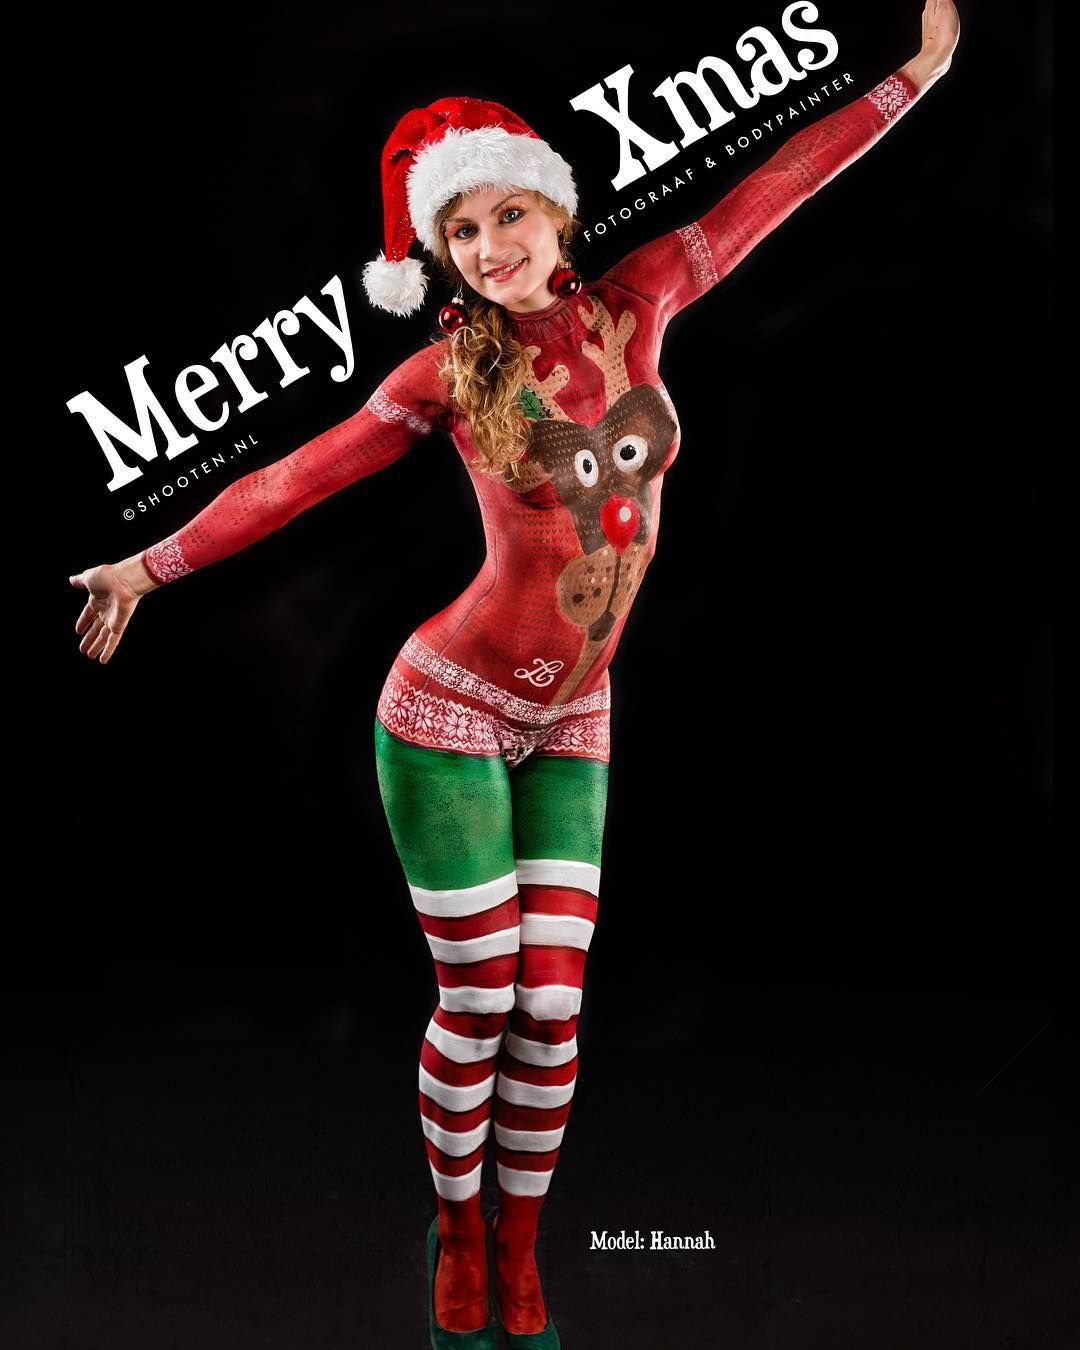 Kersttrui Utrecht.Ugly Xmas Sweater Bodypainting Model Hannah Bodypainting Photo